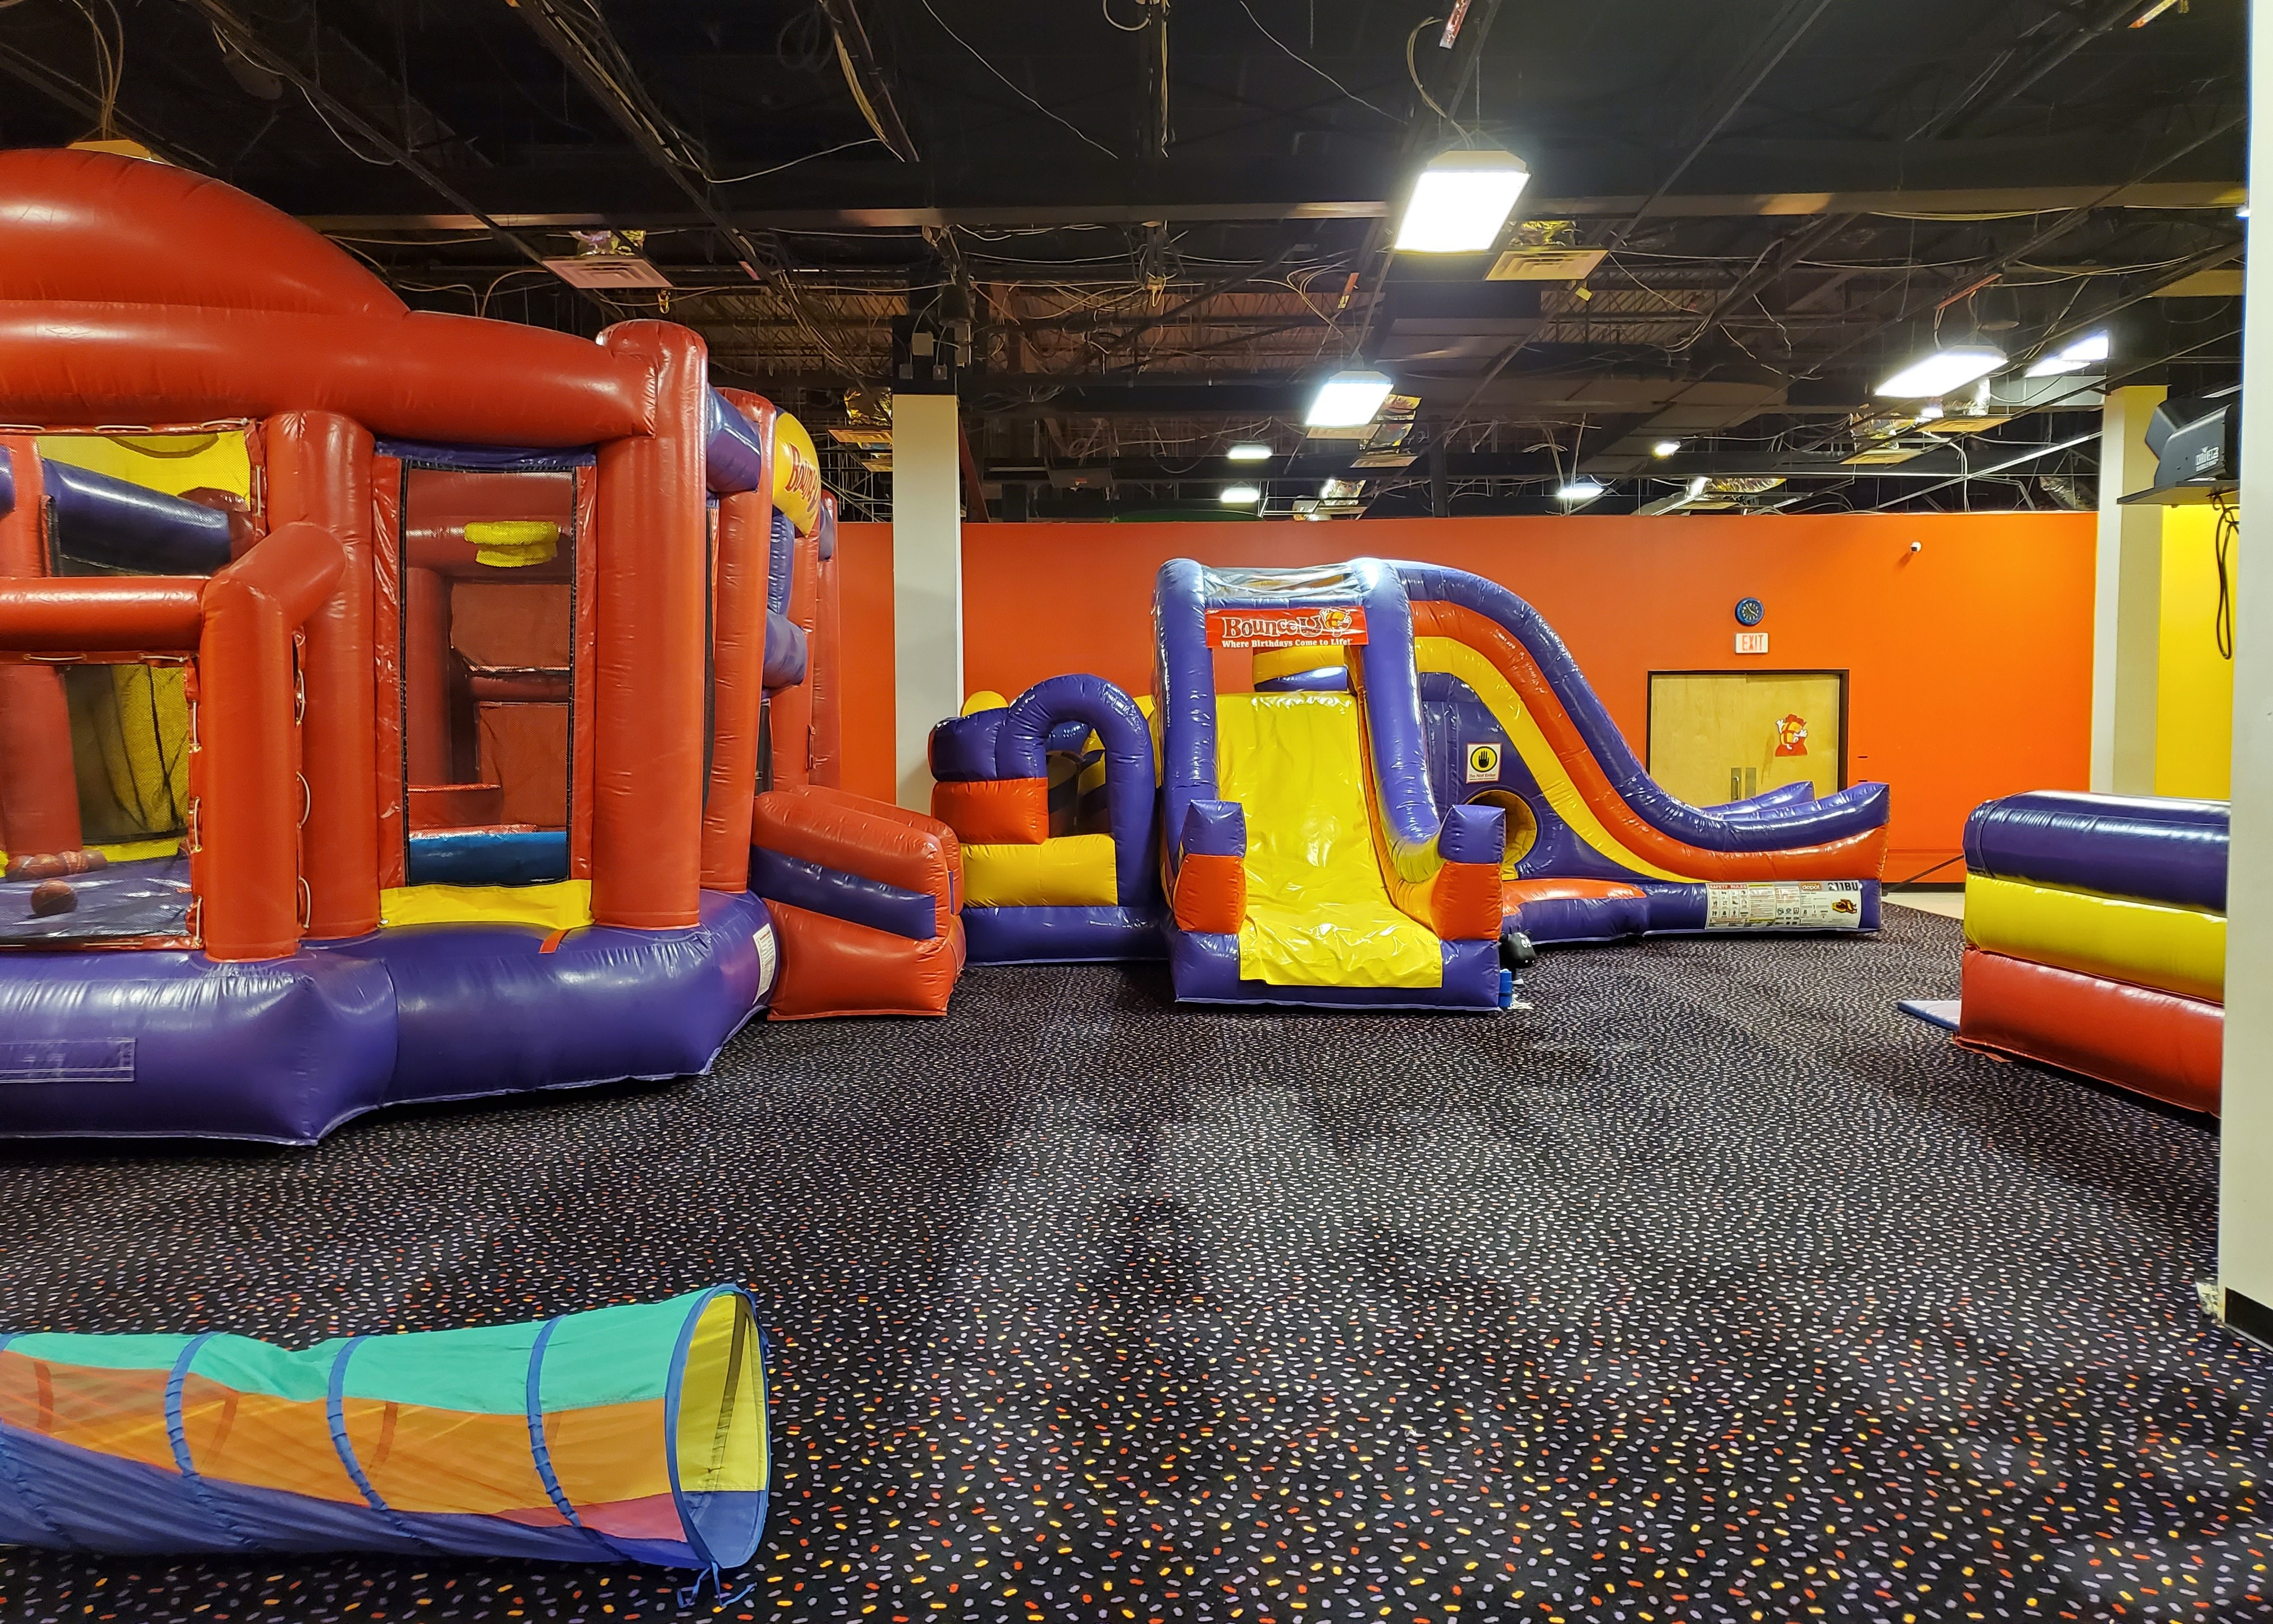 BounceU birthday party arena space with two large inflatable rides for private parties.